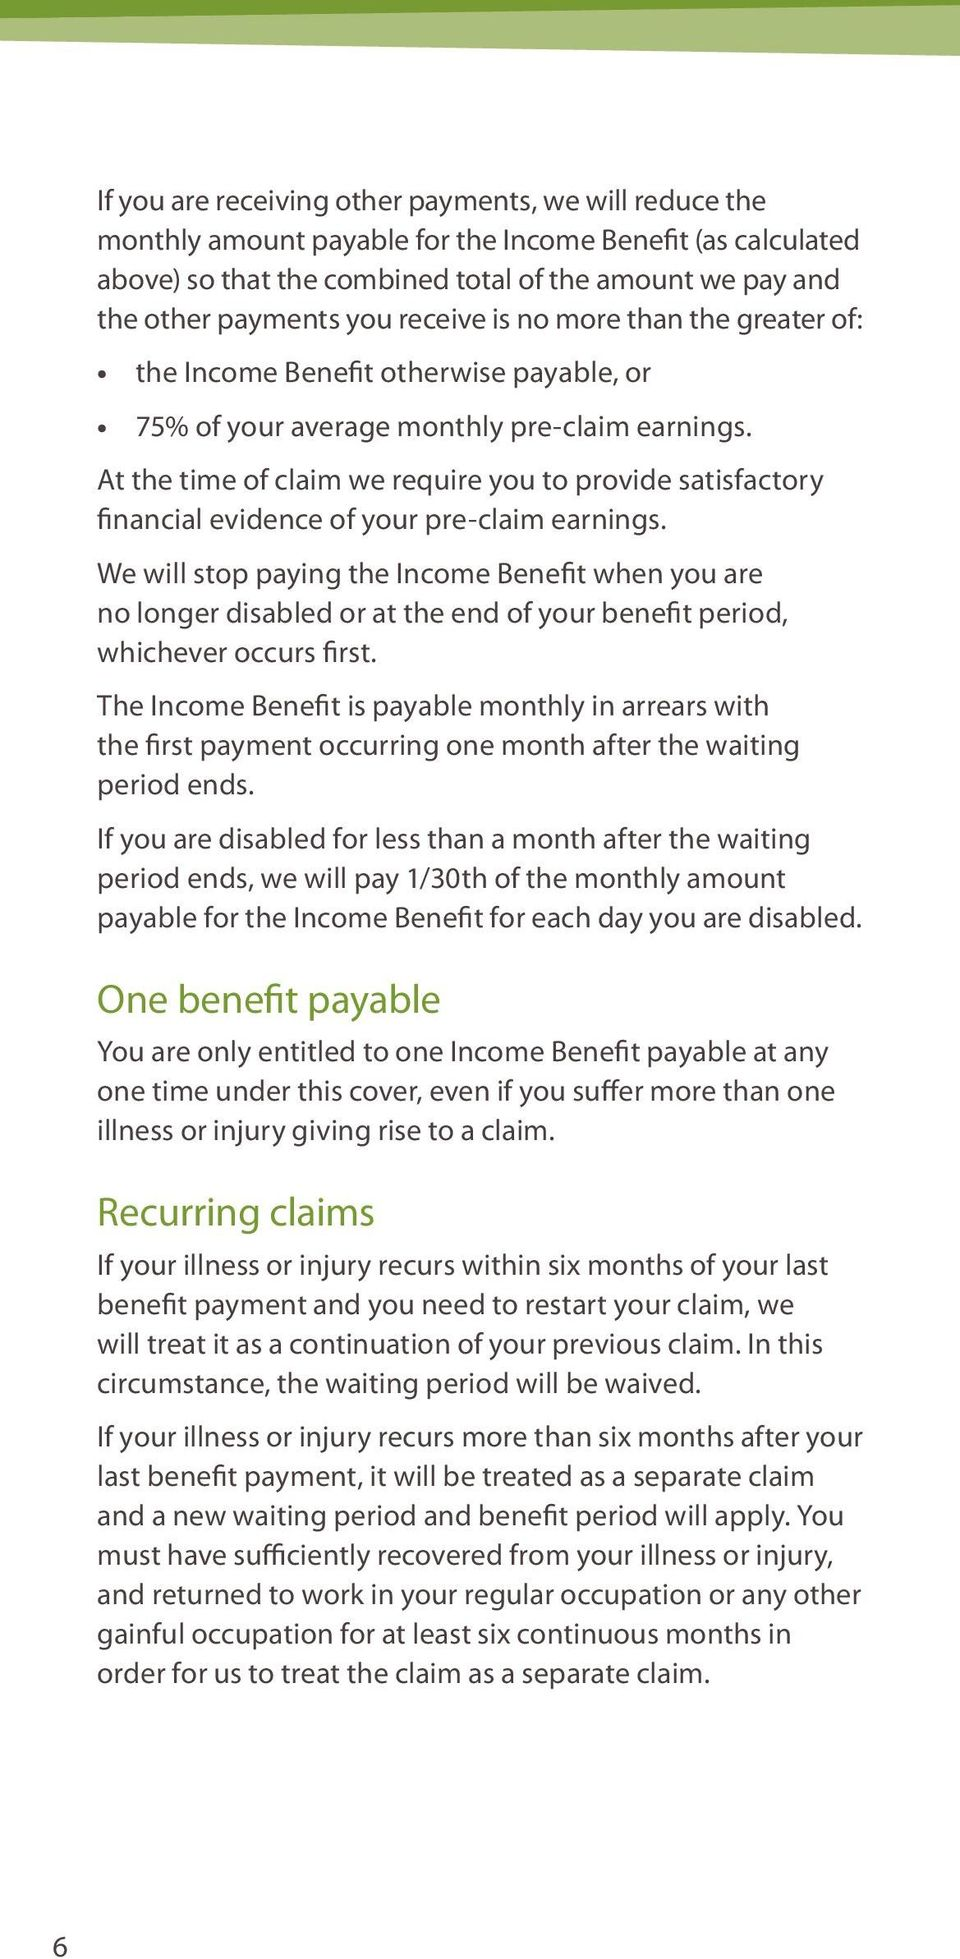 At the time of claim we require you to provide satisfactory financial evidence of your pre-claim earnings.